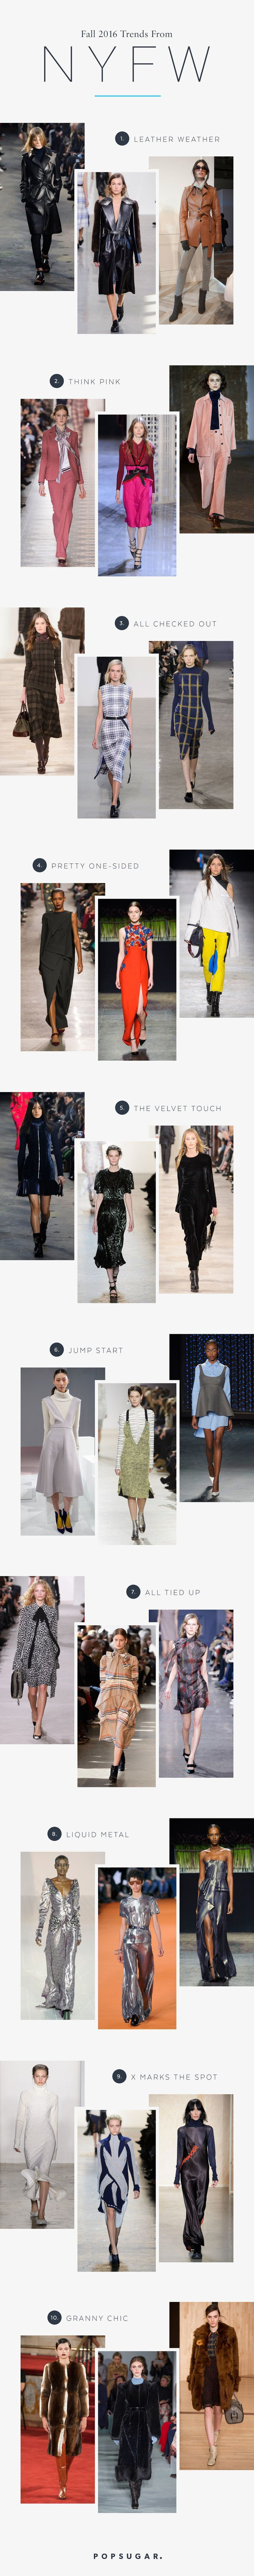 Here are the fashion trends you will be wearing next Fall.